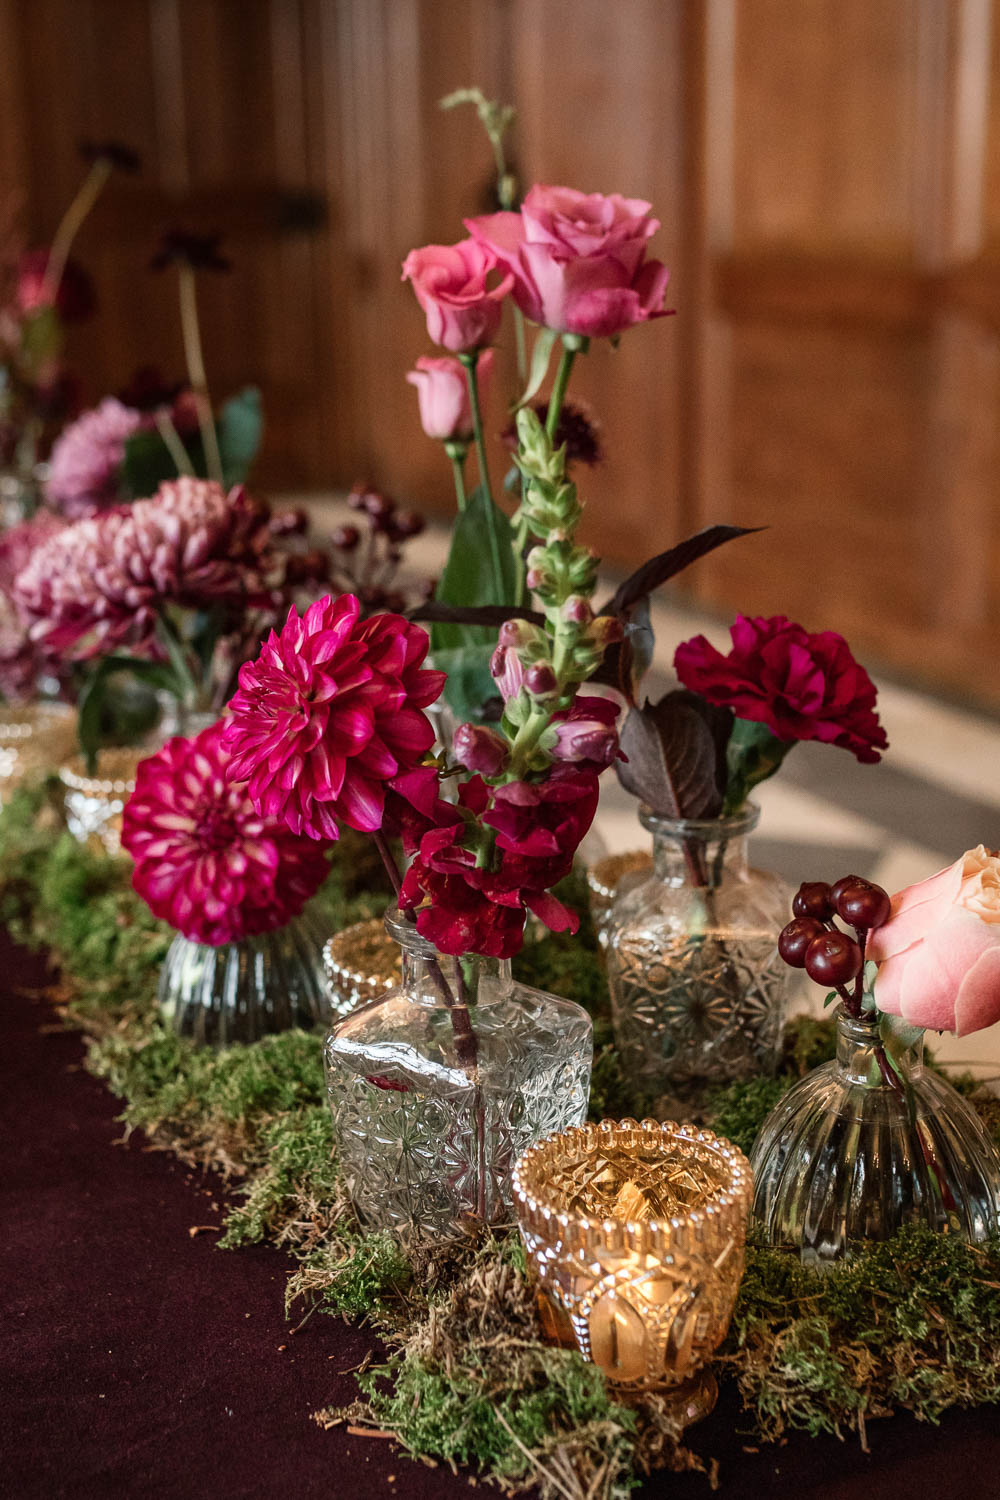 Bottle Flowers Table Centrepiece Decor Red Pink Moss Gold Dahlia Rose Winter Luxe Wedding Ideas Becky Harley Photography